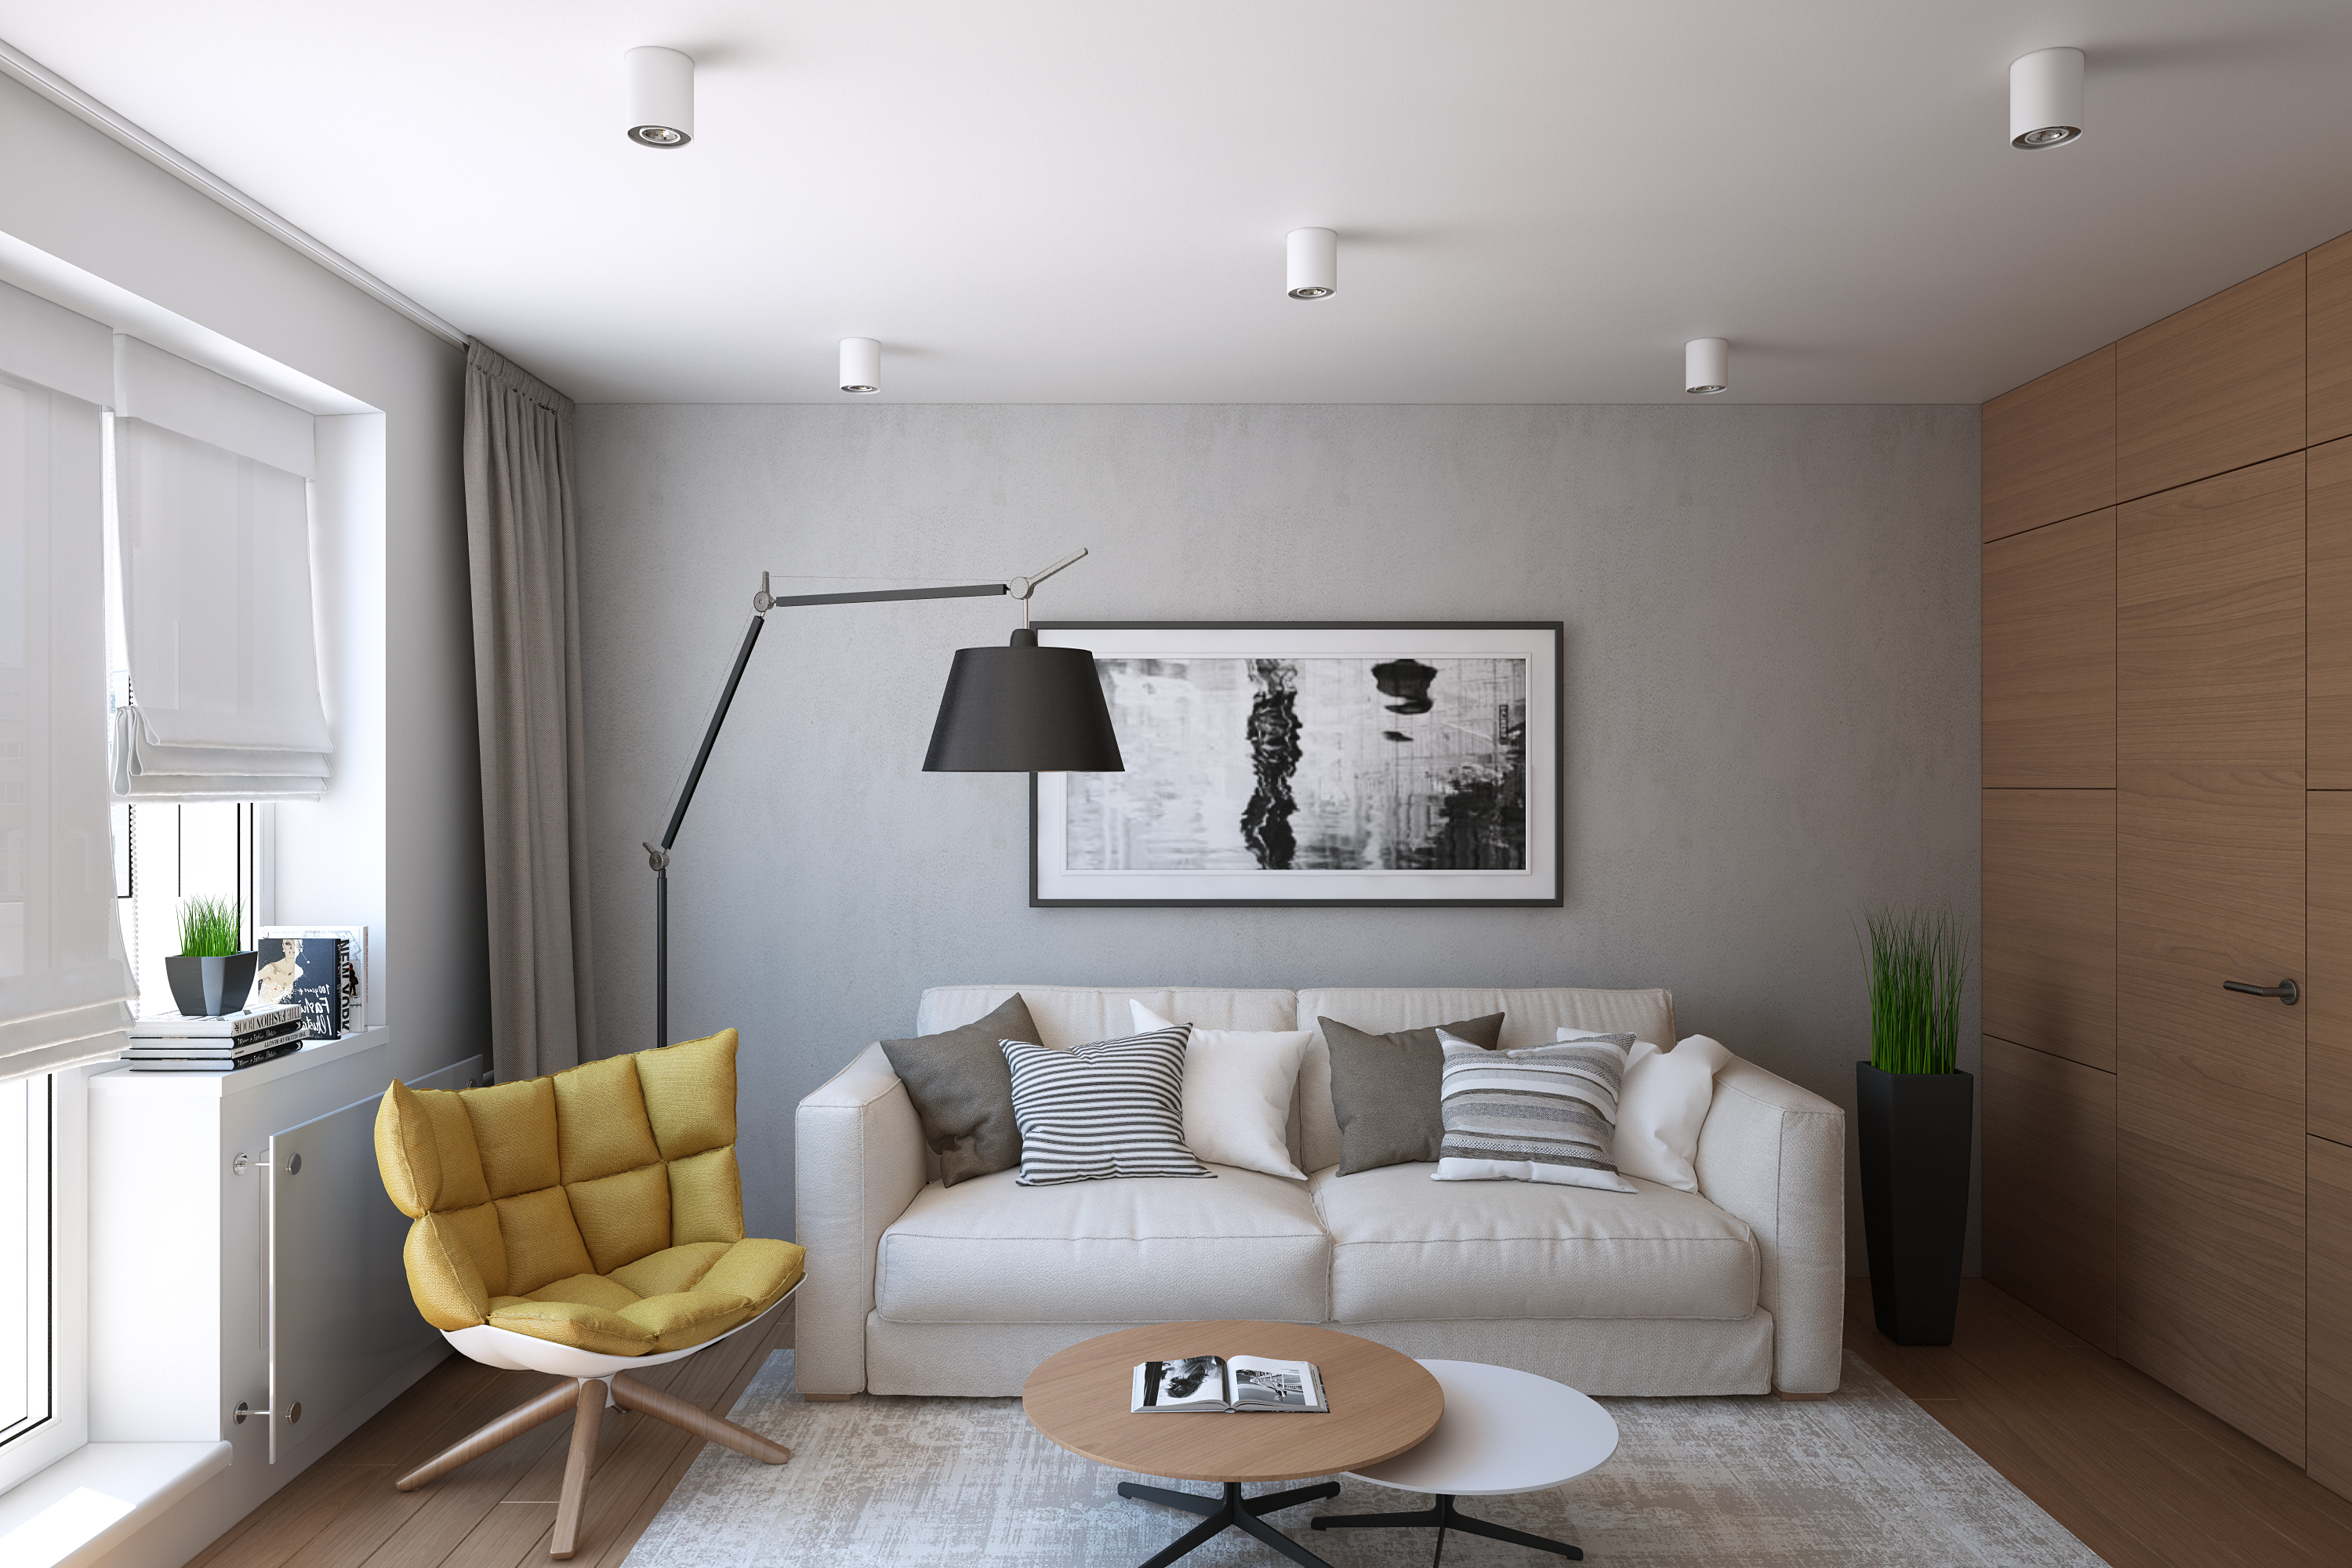 Small-Apartment-Design-just3ds.com-8